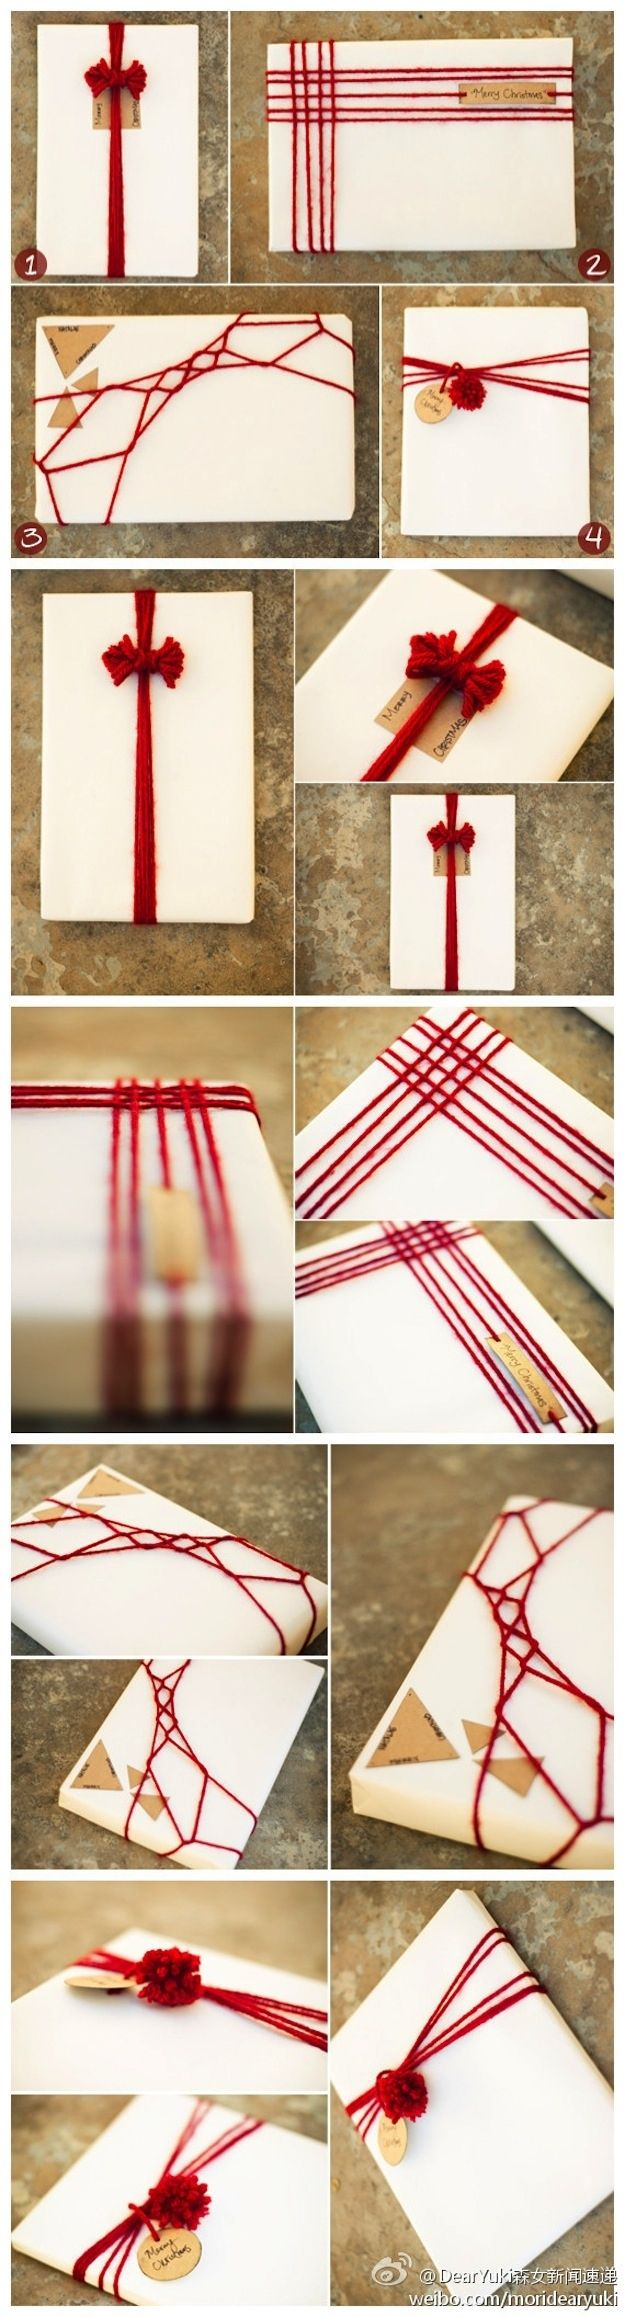 Try These 30 Simple String Projects Now-homesthetics (7)